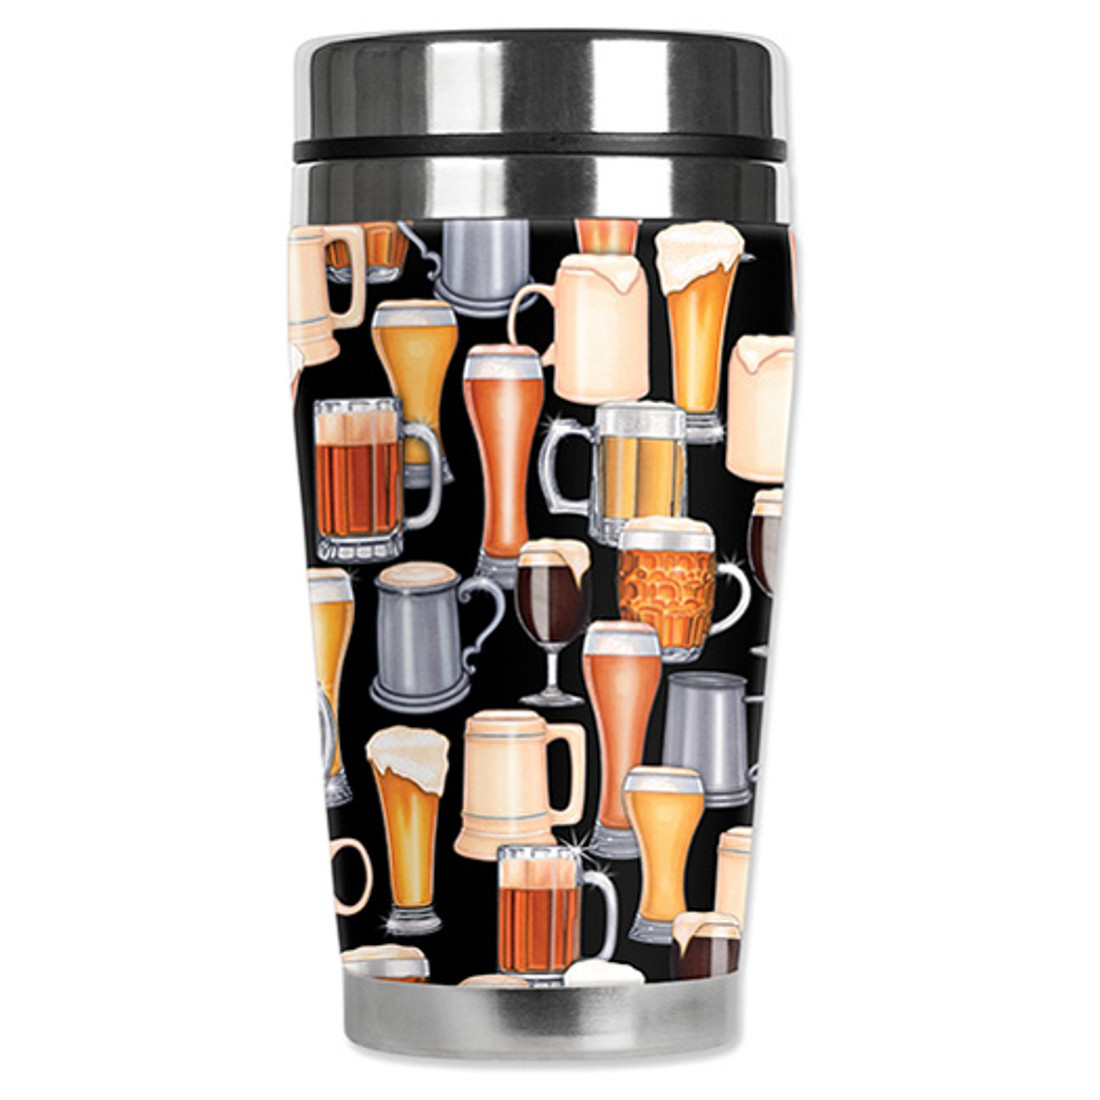 Beer glass print neoprene travel mug.